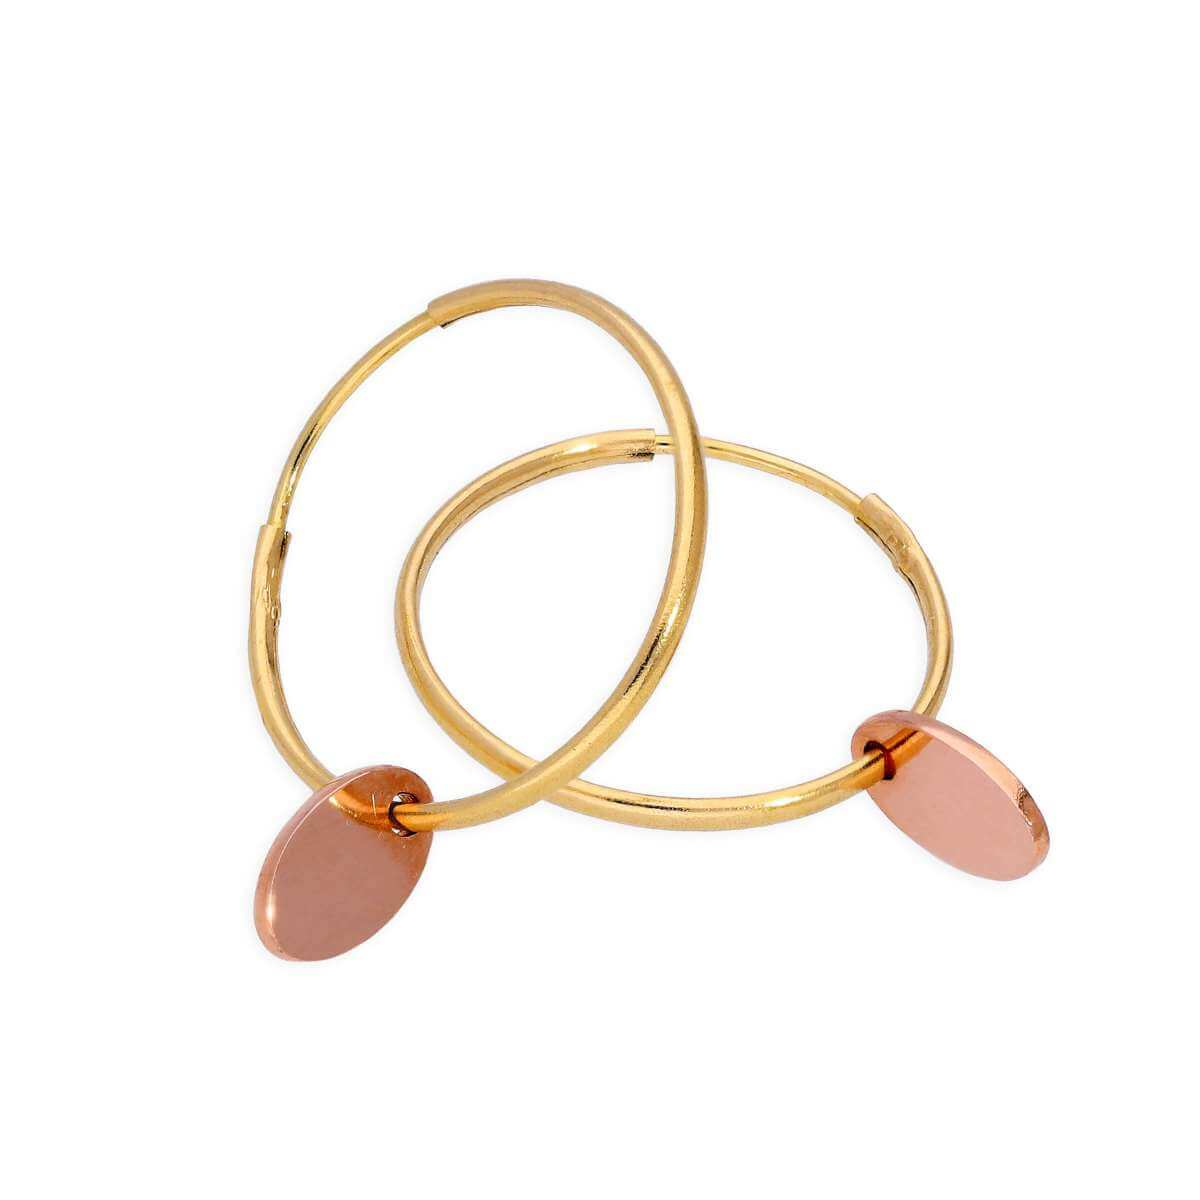 9ct Gold 13mm Charm Hoop Earrings with Tiny 9ct Rose Gold Oval Tags